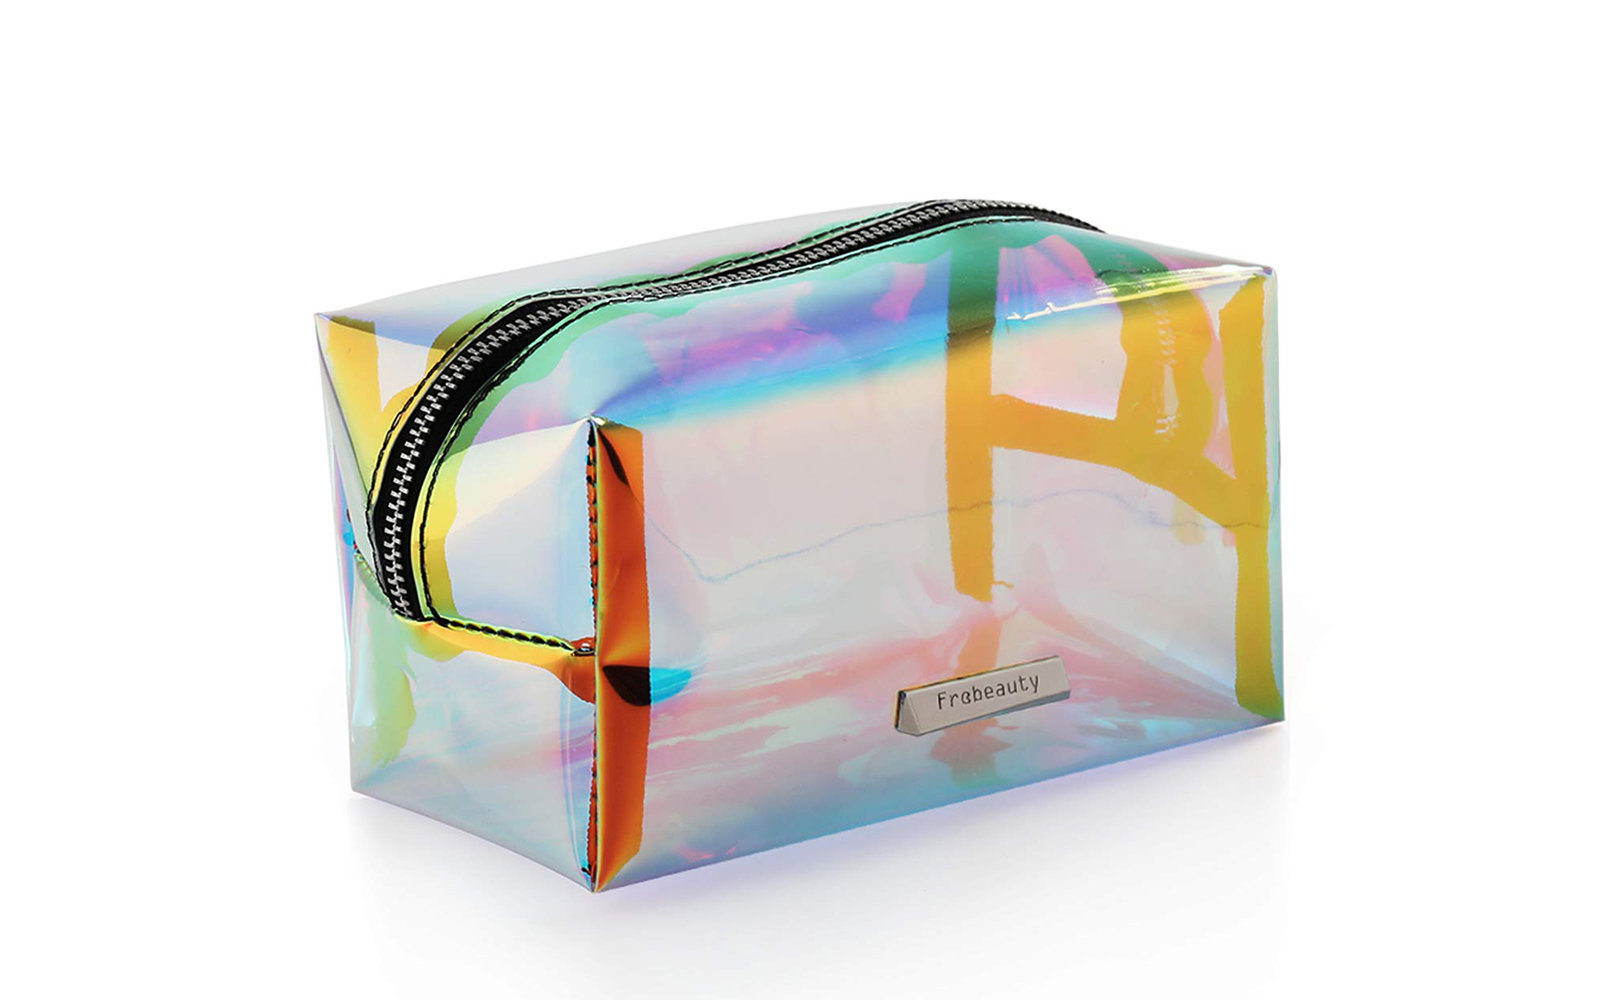 Frebeauty Holographic Iridescent Toiletries Pouch